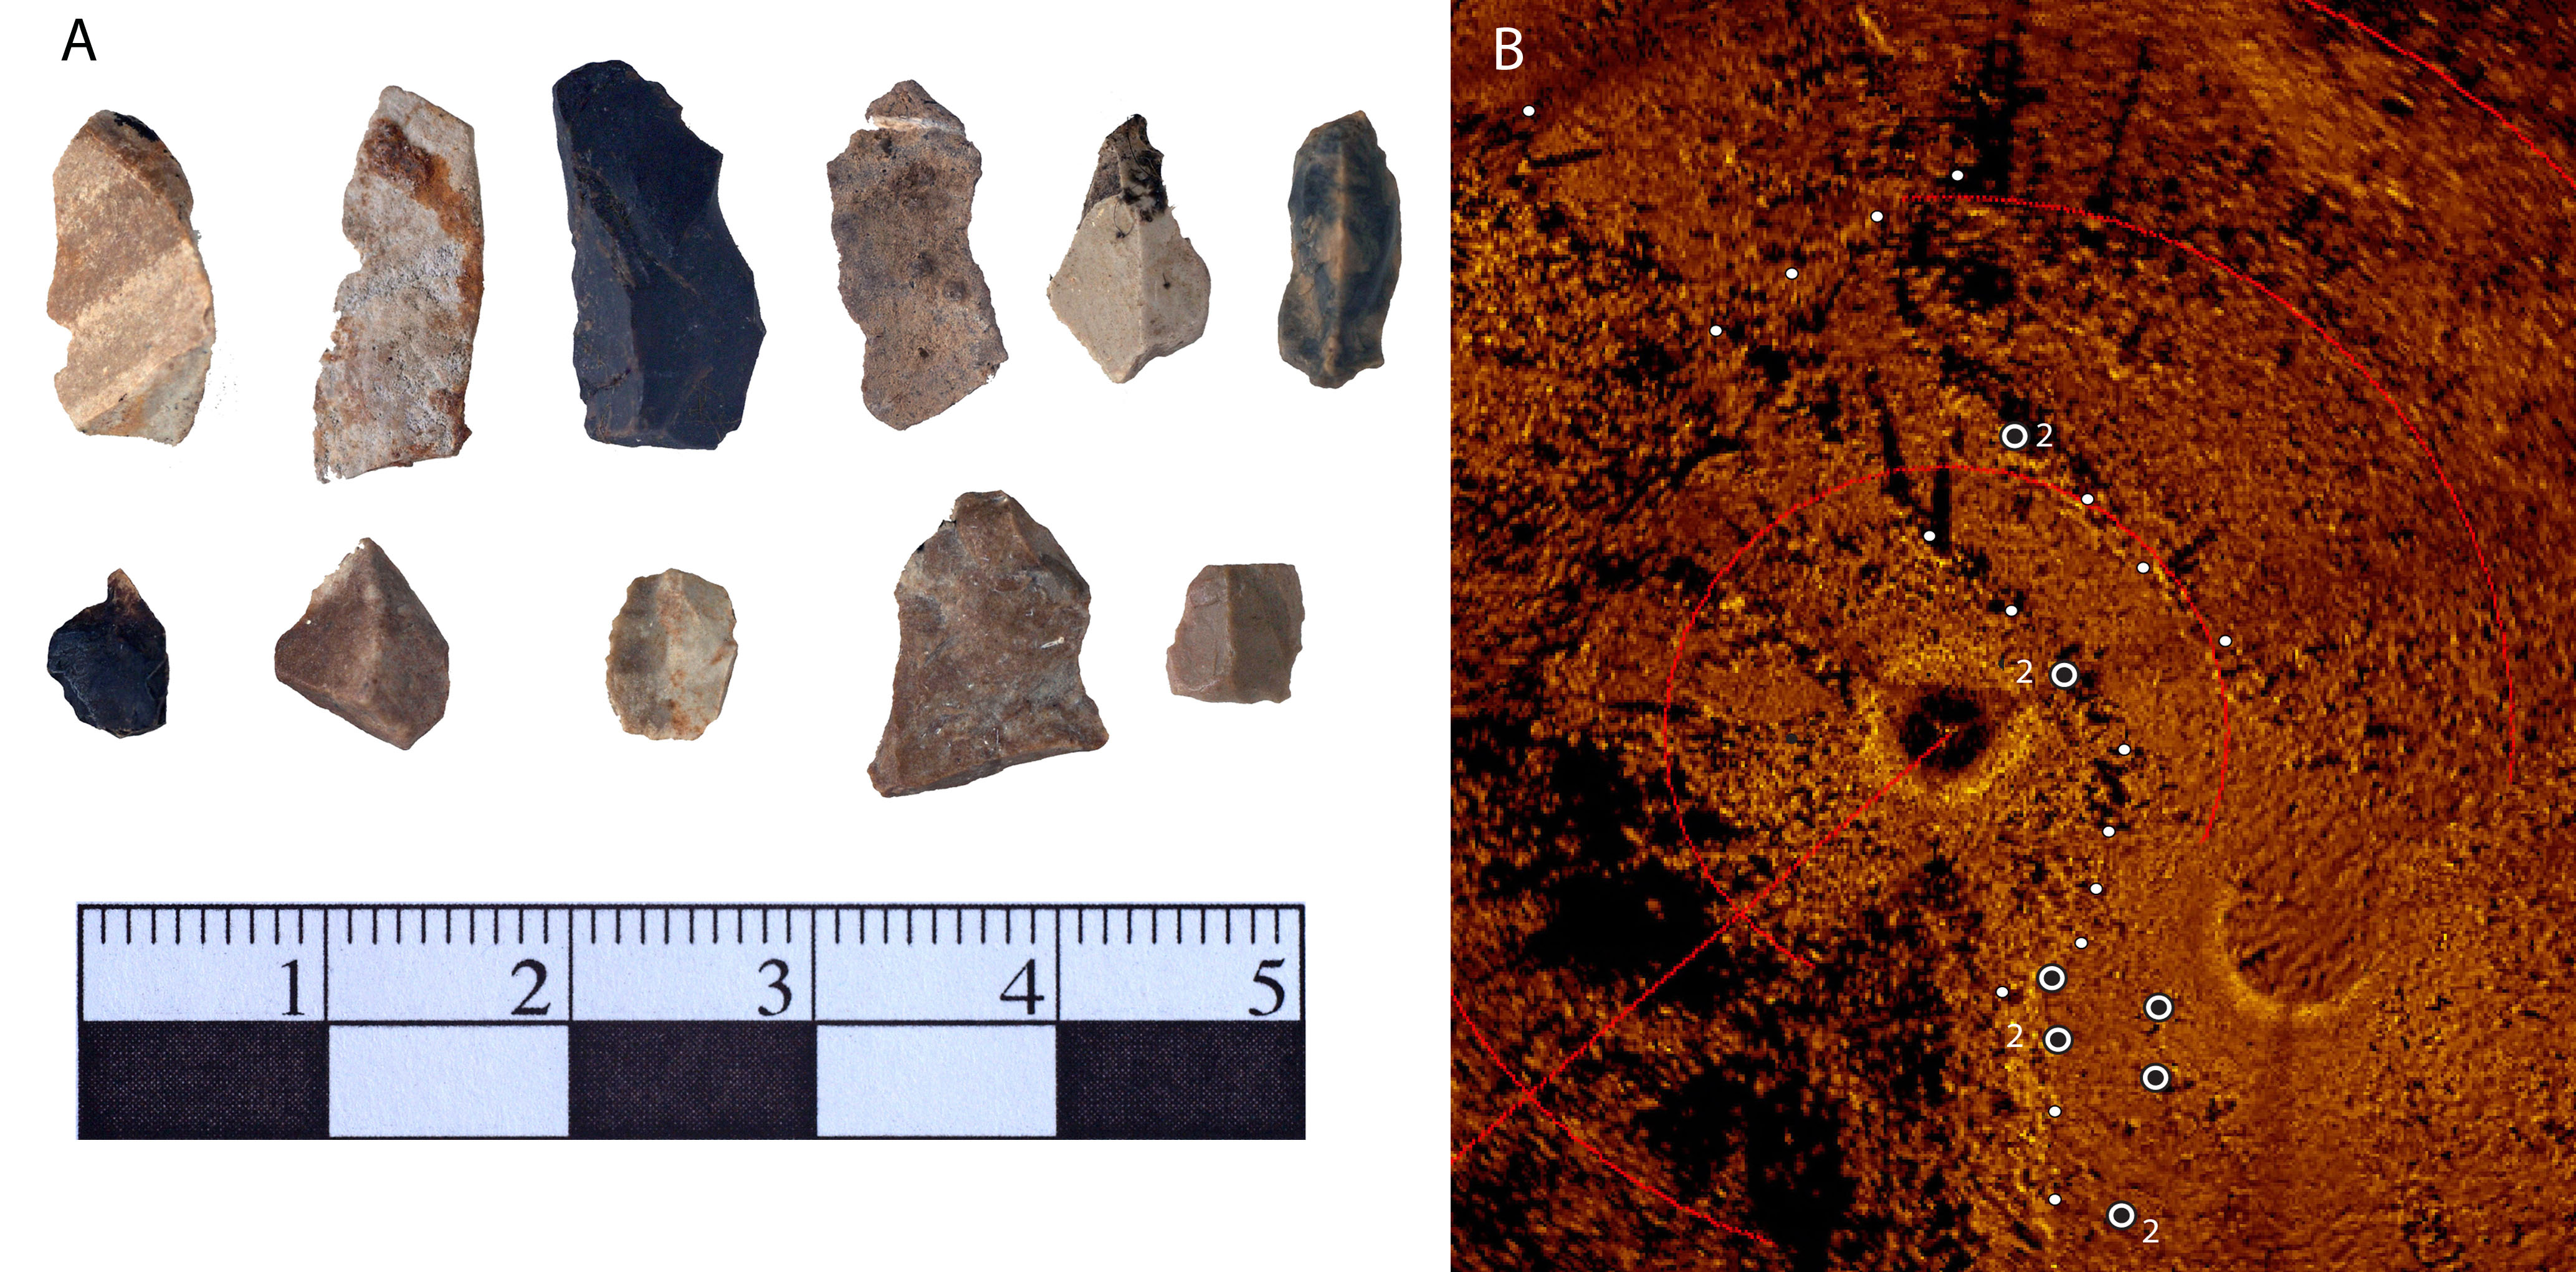 stone tool waste and drop 45 sonar